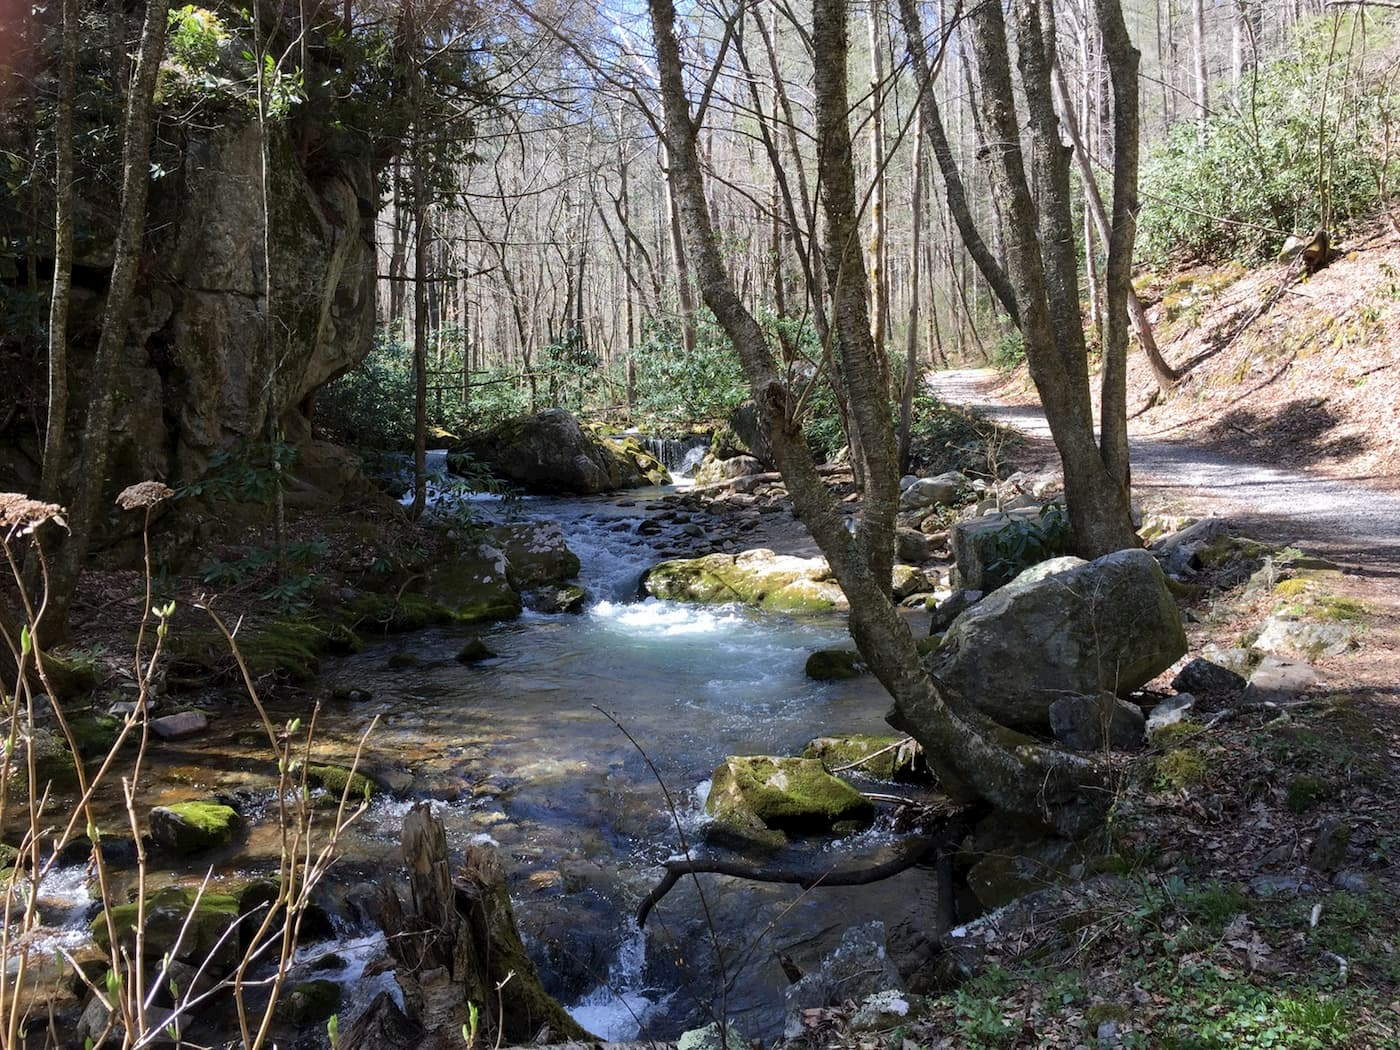 Small rushing river flowing through a rocky forested area in Rocky Fork State Park.